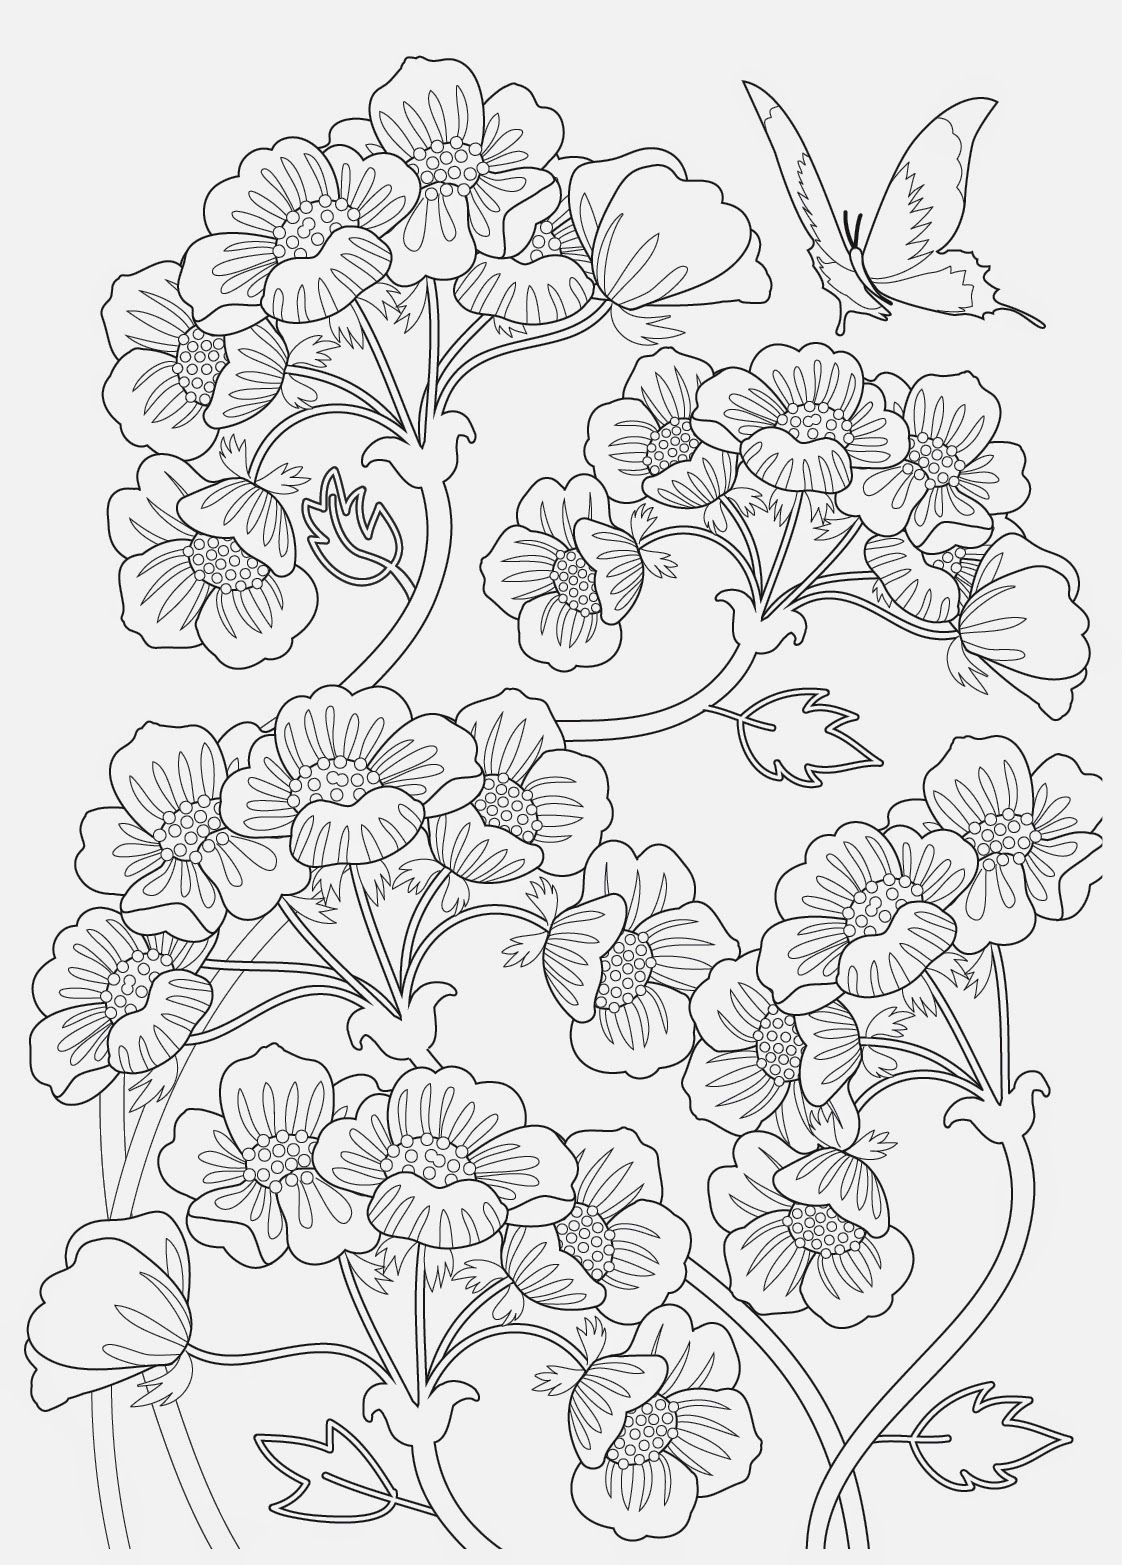 Pin by christina bechtold on coloring good at any age (13